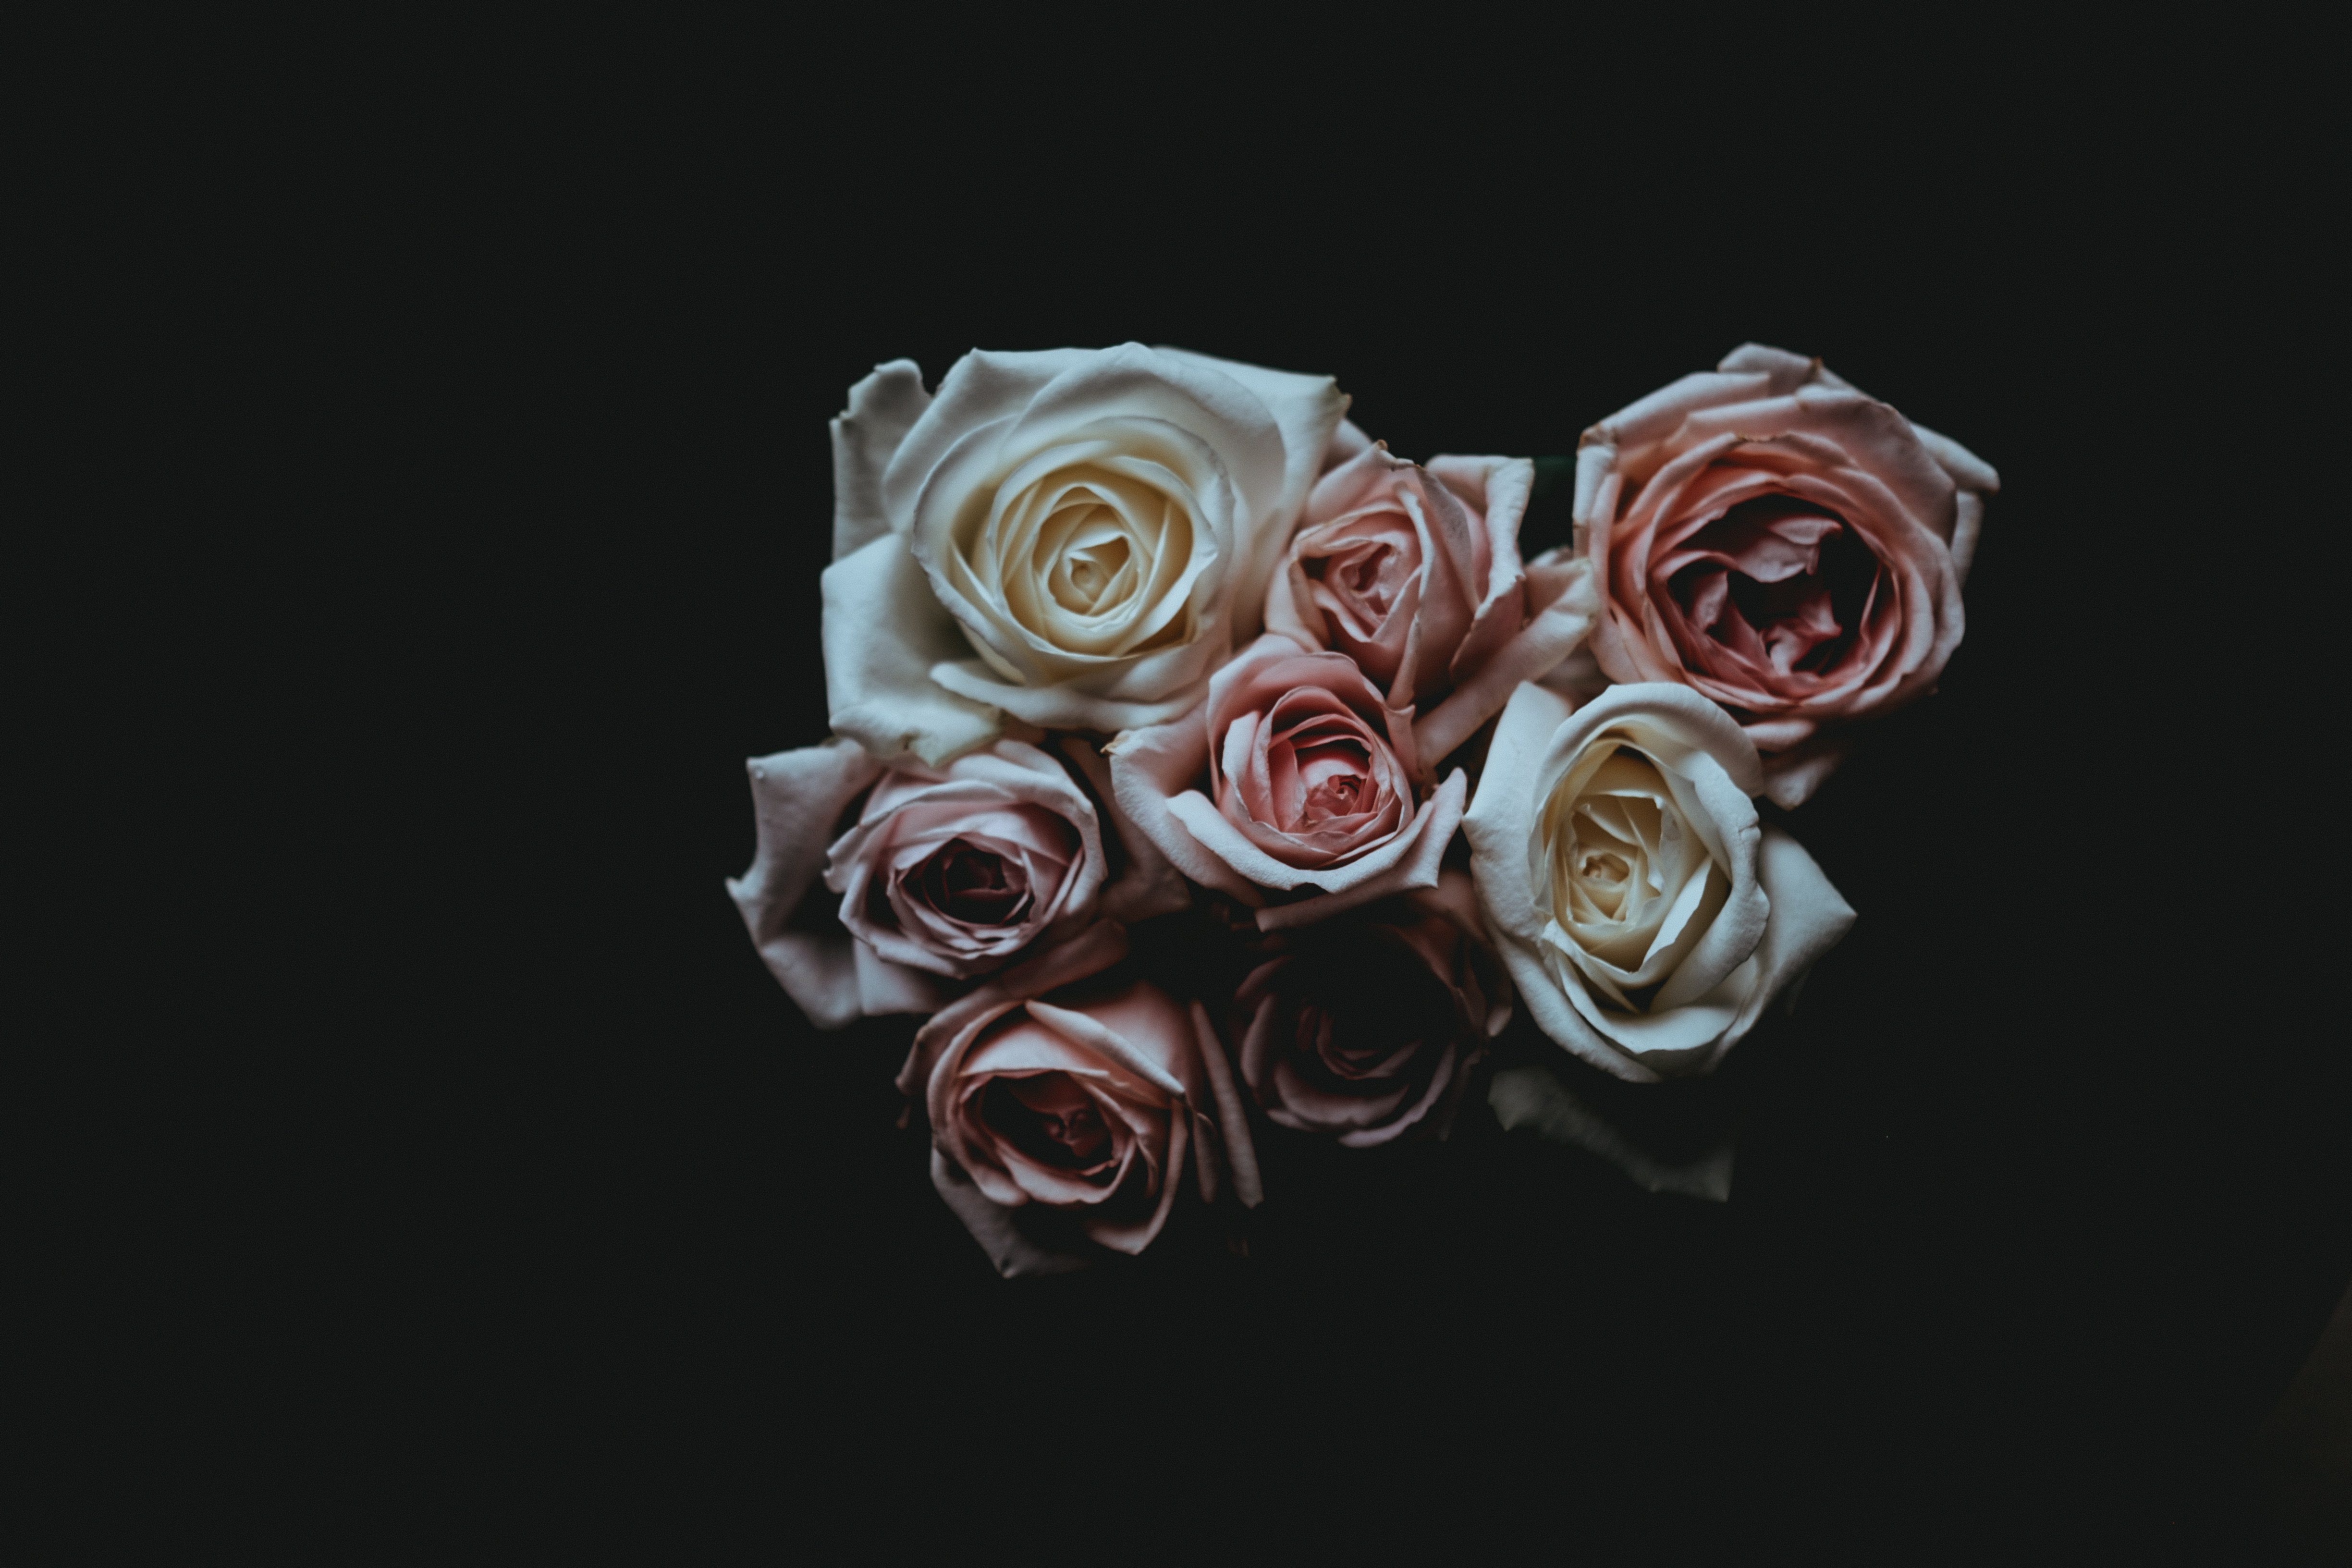 low light photography of roses